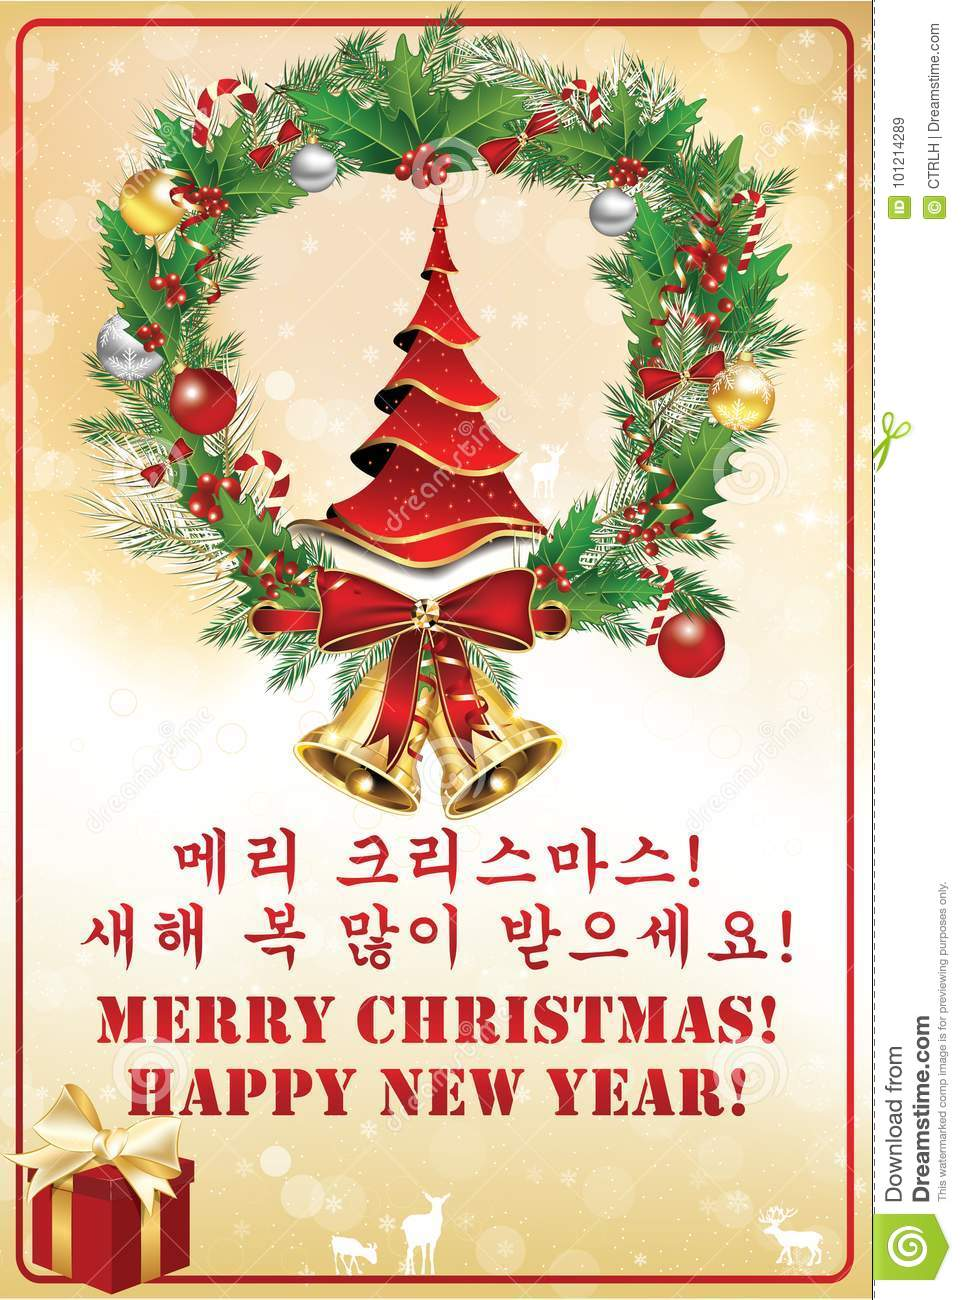 christmas new year greeting card with message written in english and korean